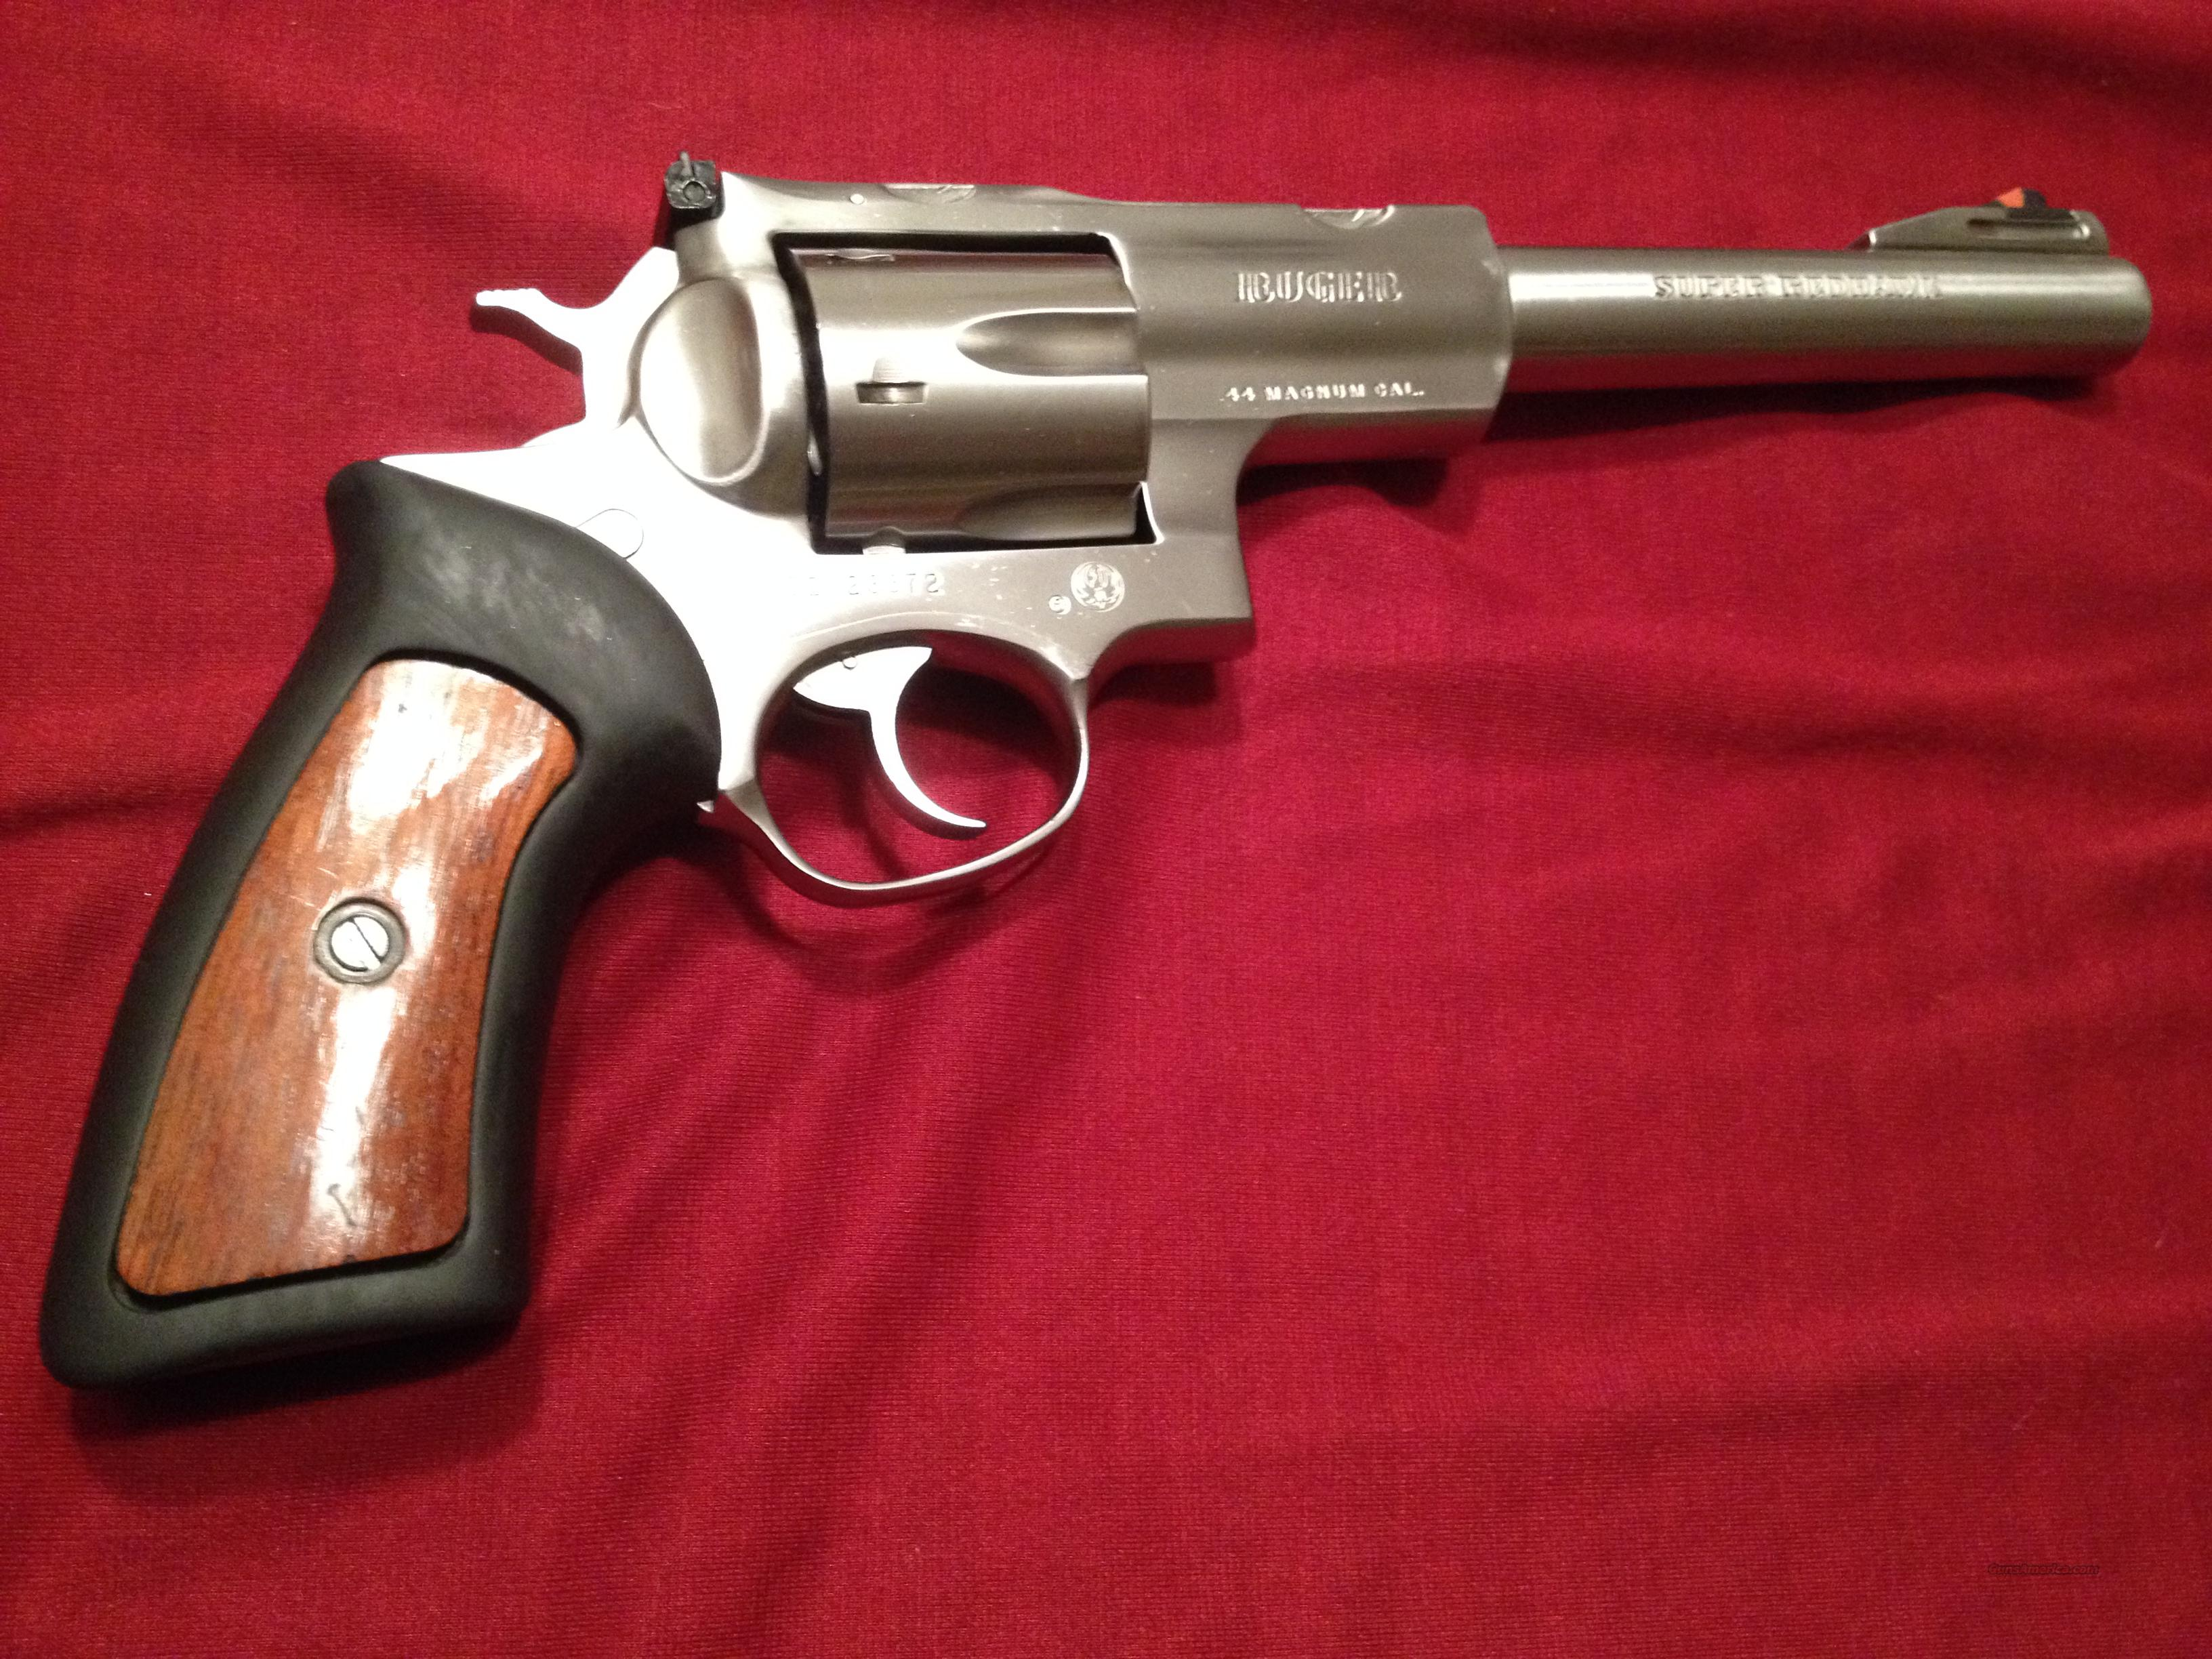 44 MAG Ruger Super Red Hawk - Like New - San Diego, CA - will ship  Guns > Pistols > Ruger Double Action Revolver > Redhawk Type